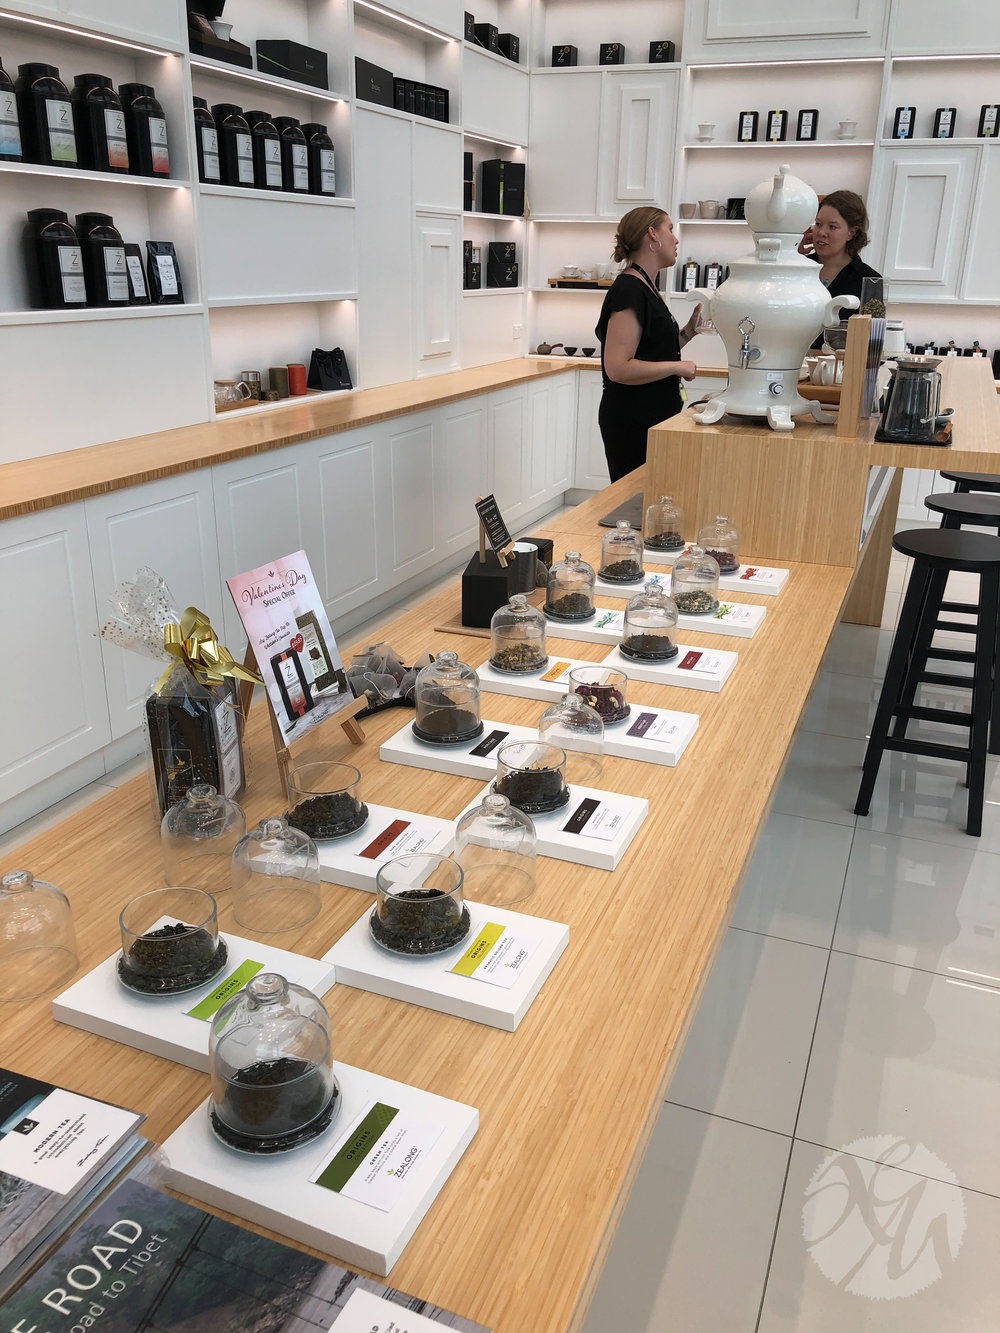 Each of the Zealong Tea Estate's teas was laid out in the retail shop. We lifted the glass lid off each to inhale the beautiful scents of pure tea leaves, aromatic flowers, and herbs.